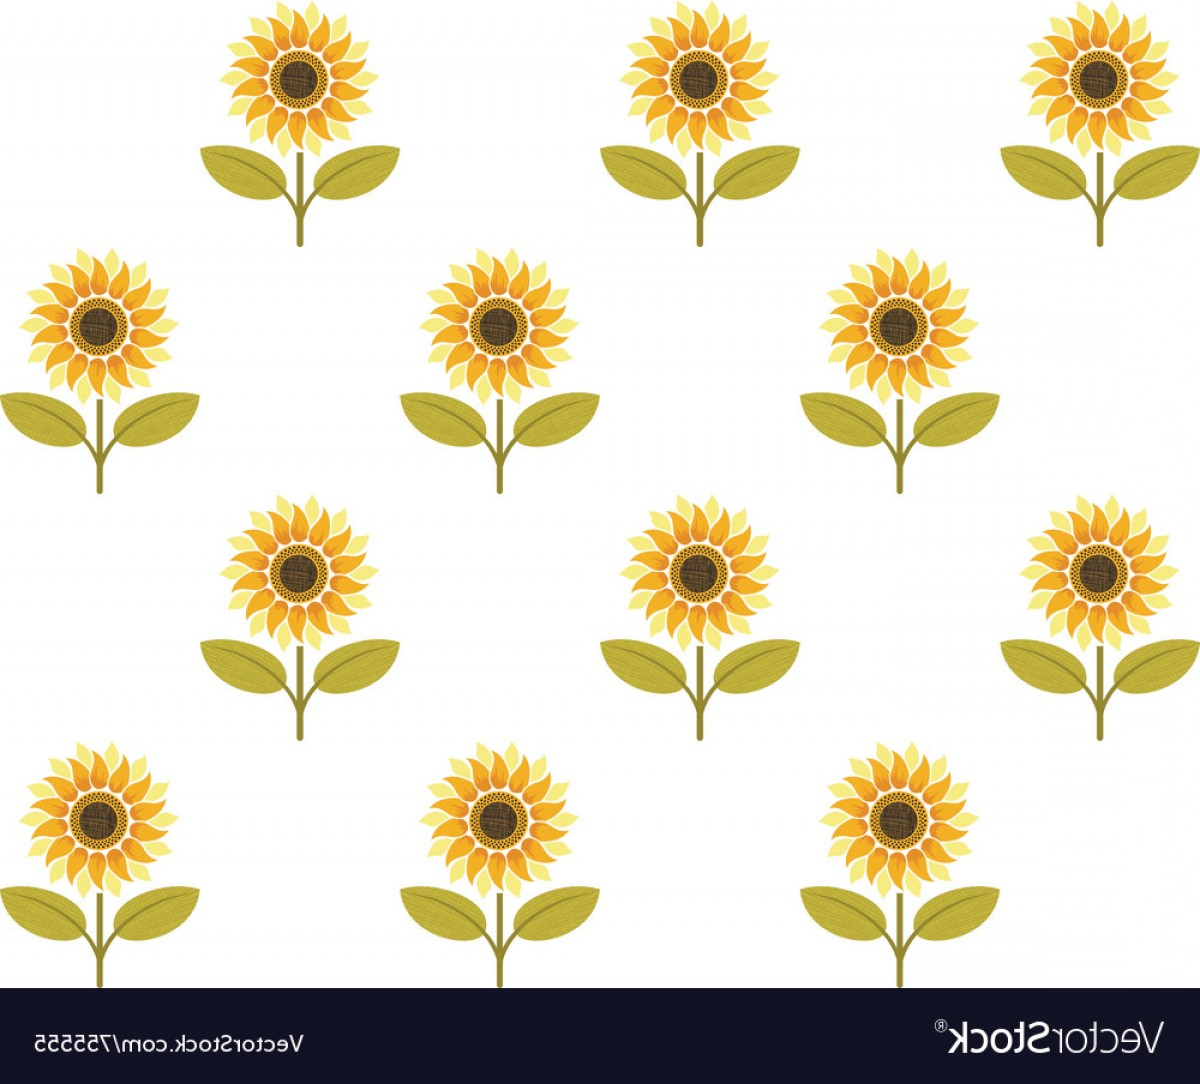 Sunflower Vector Pattern: Cute Sunflower Seamless Pattern Vector